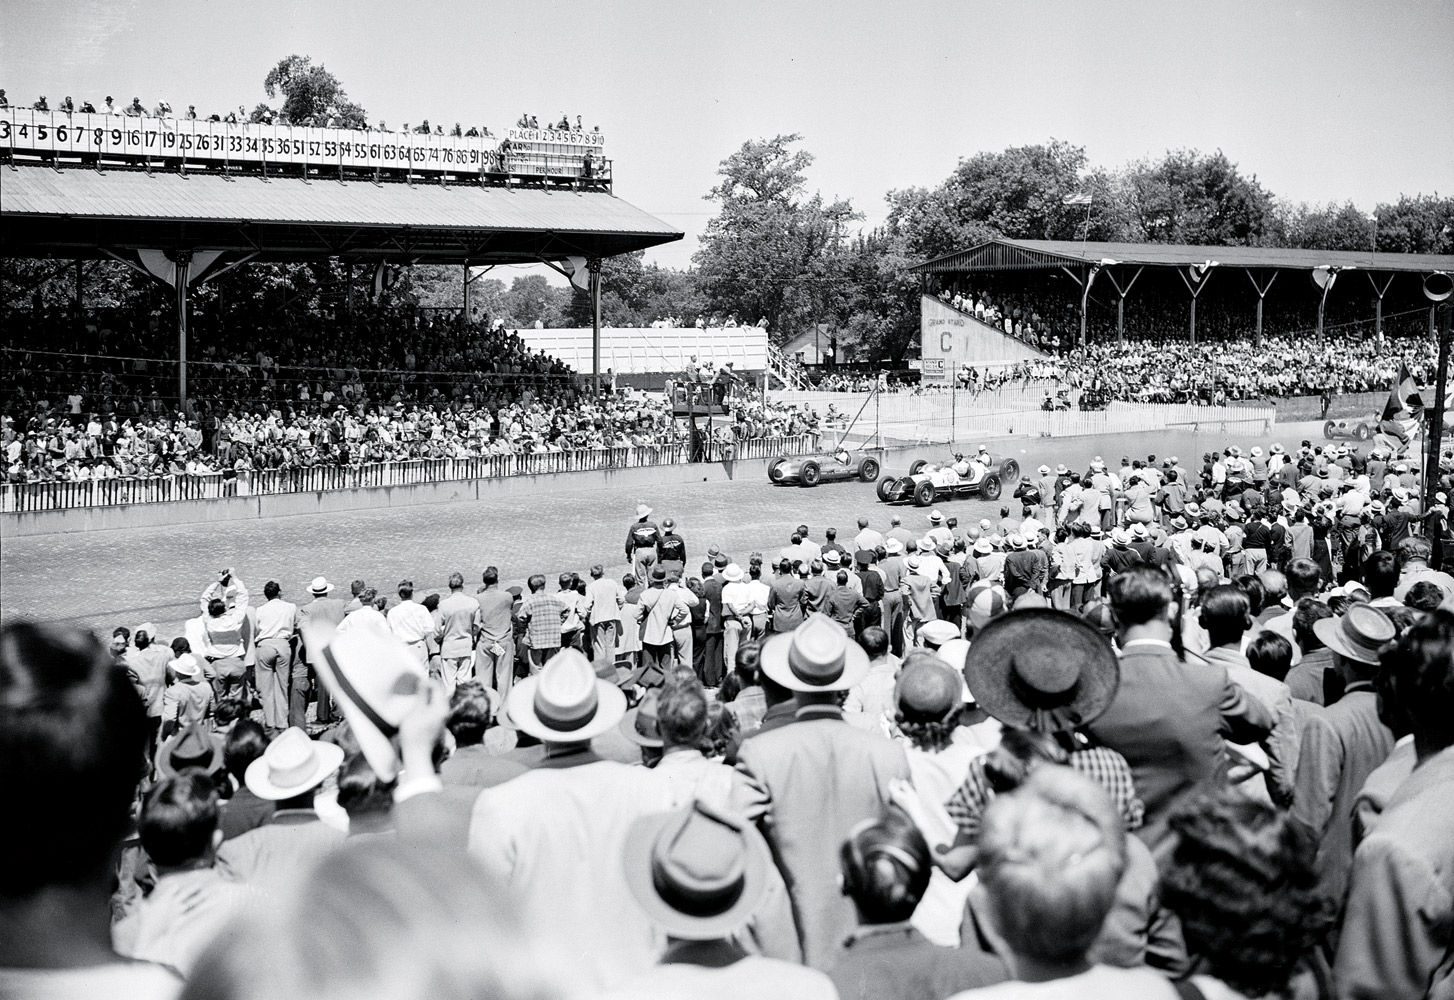 Crowds came out in full force (as well as in full headgear) and saw Mauri Rose win his third, and last, 500. Rose's car is far left at the starting line.